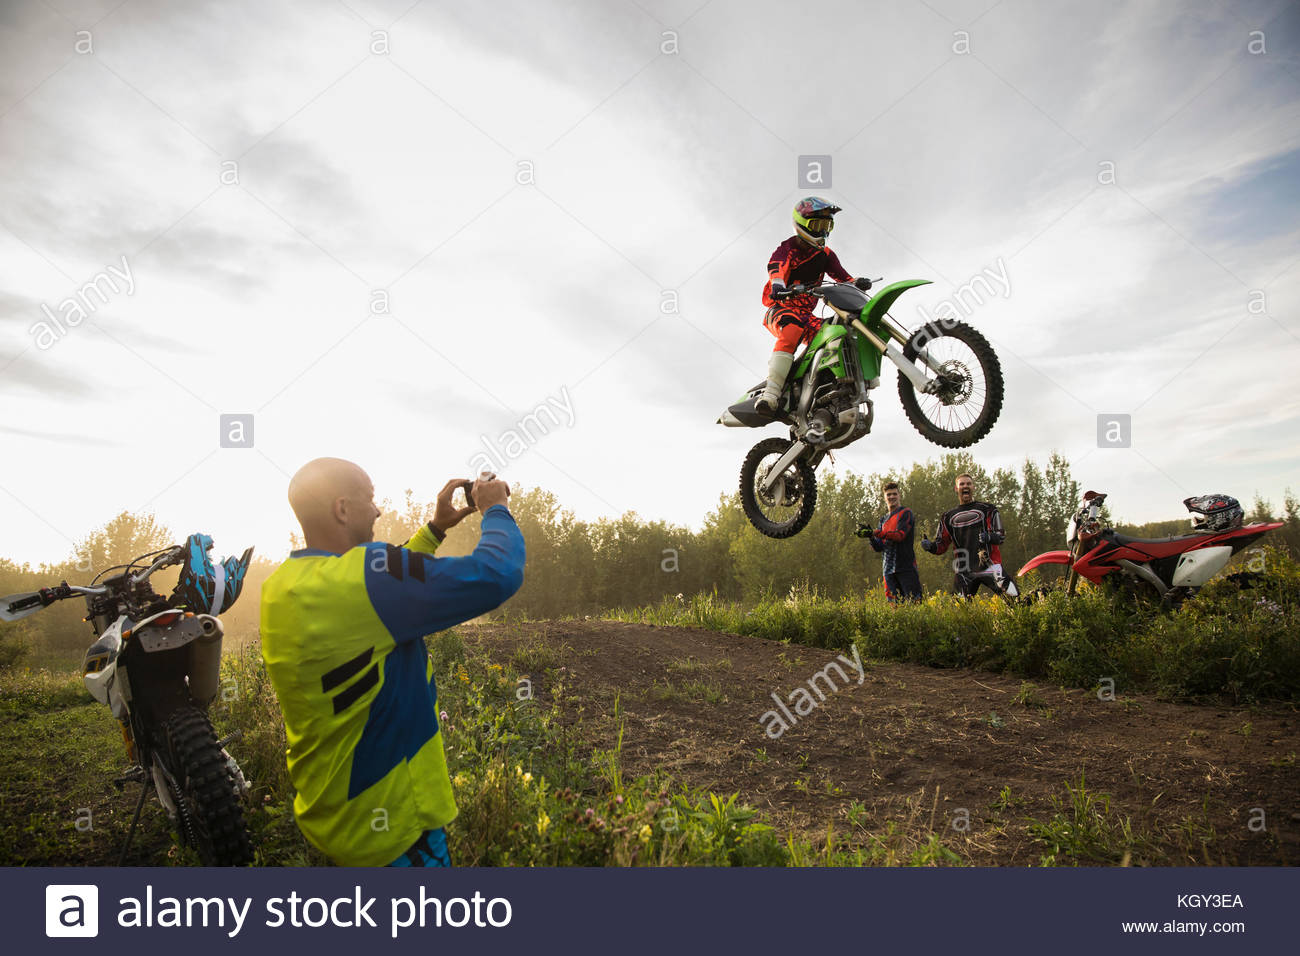 Man with camera phone photographing friend doing motorbike stunt jump on rural dirt road - Stock Image